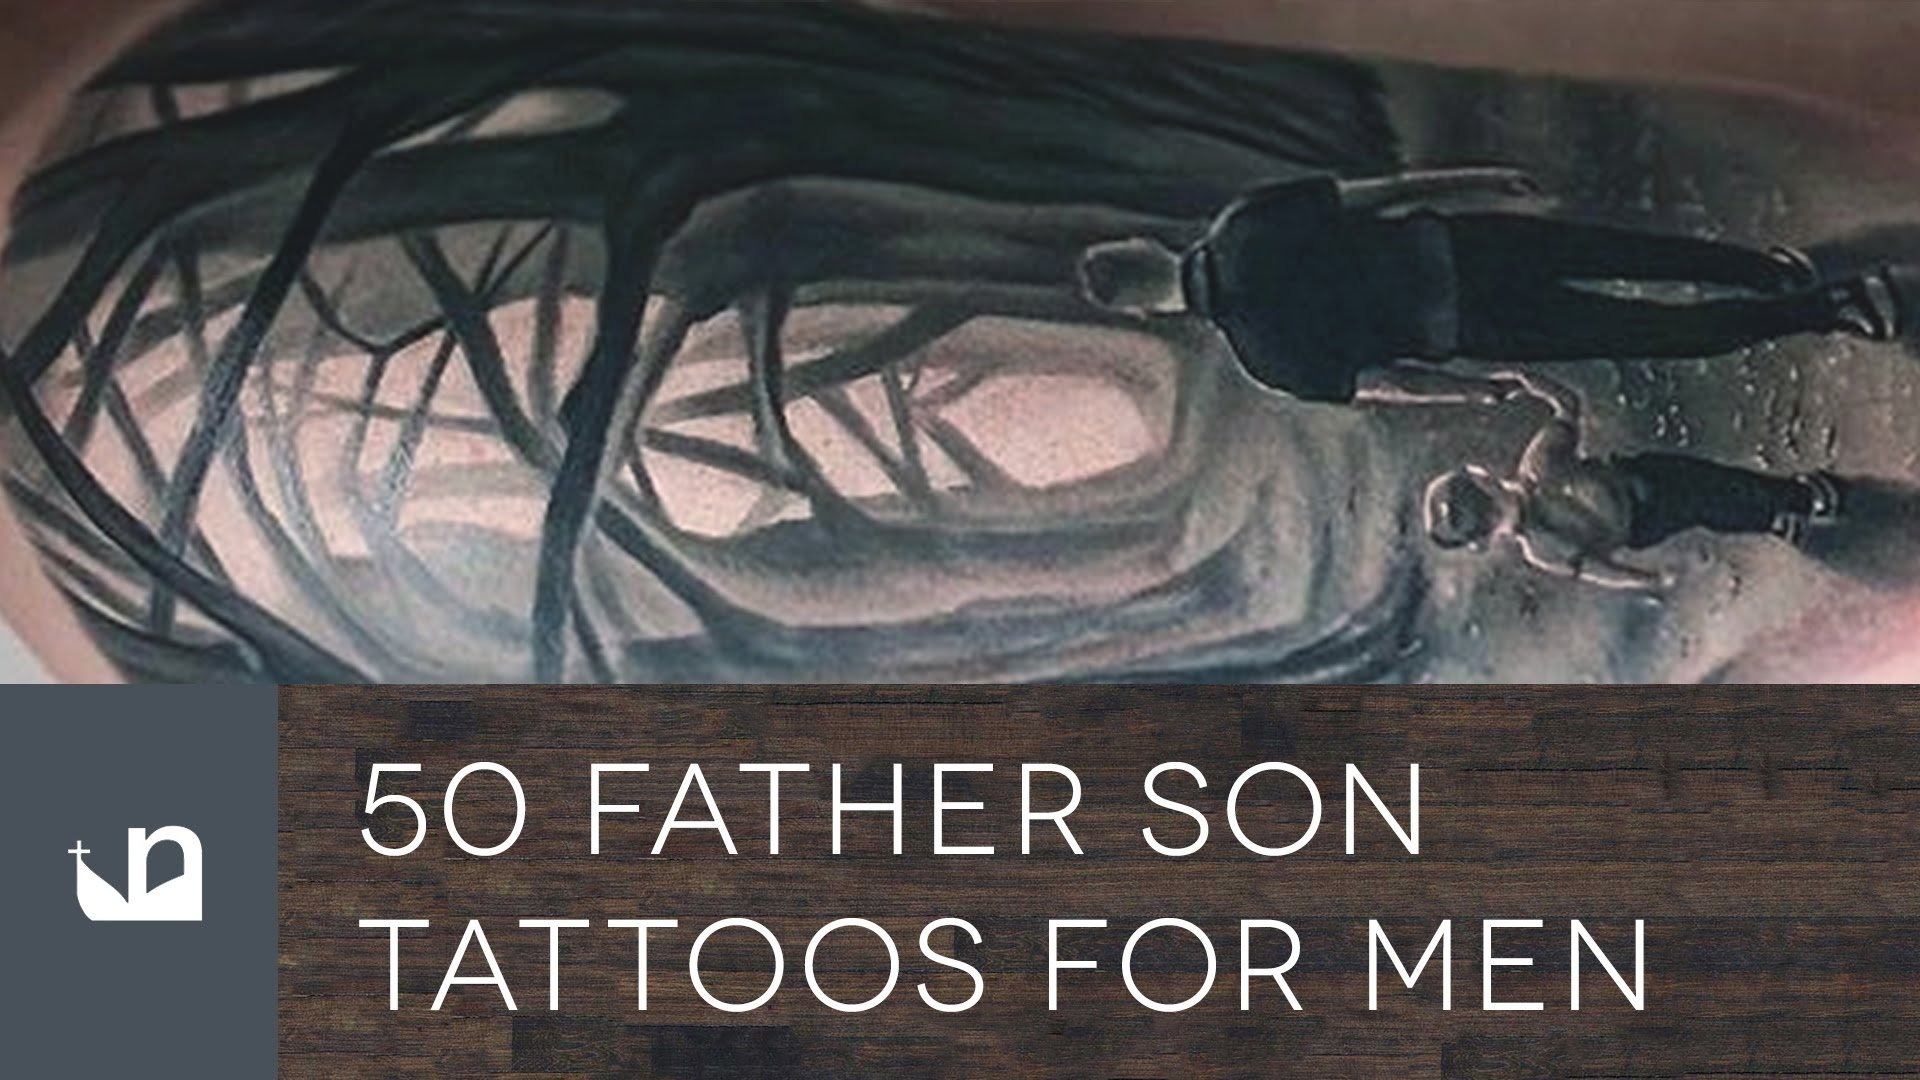 10 Best Son Tattoo Ideas For Dad 50 father son tattoos for men youtube 1